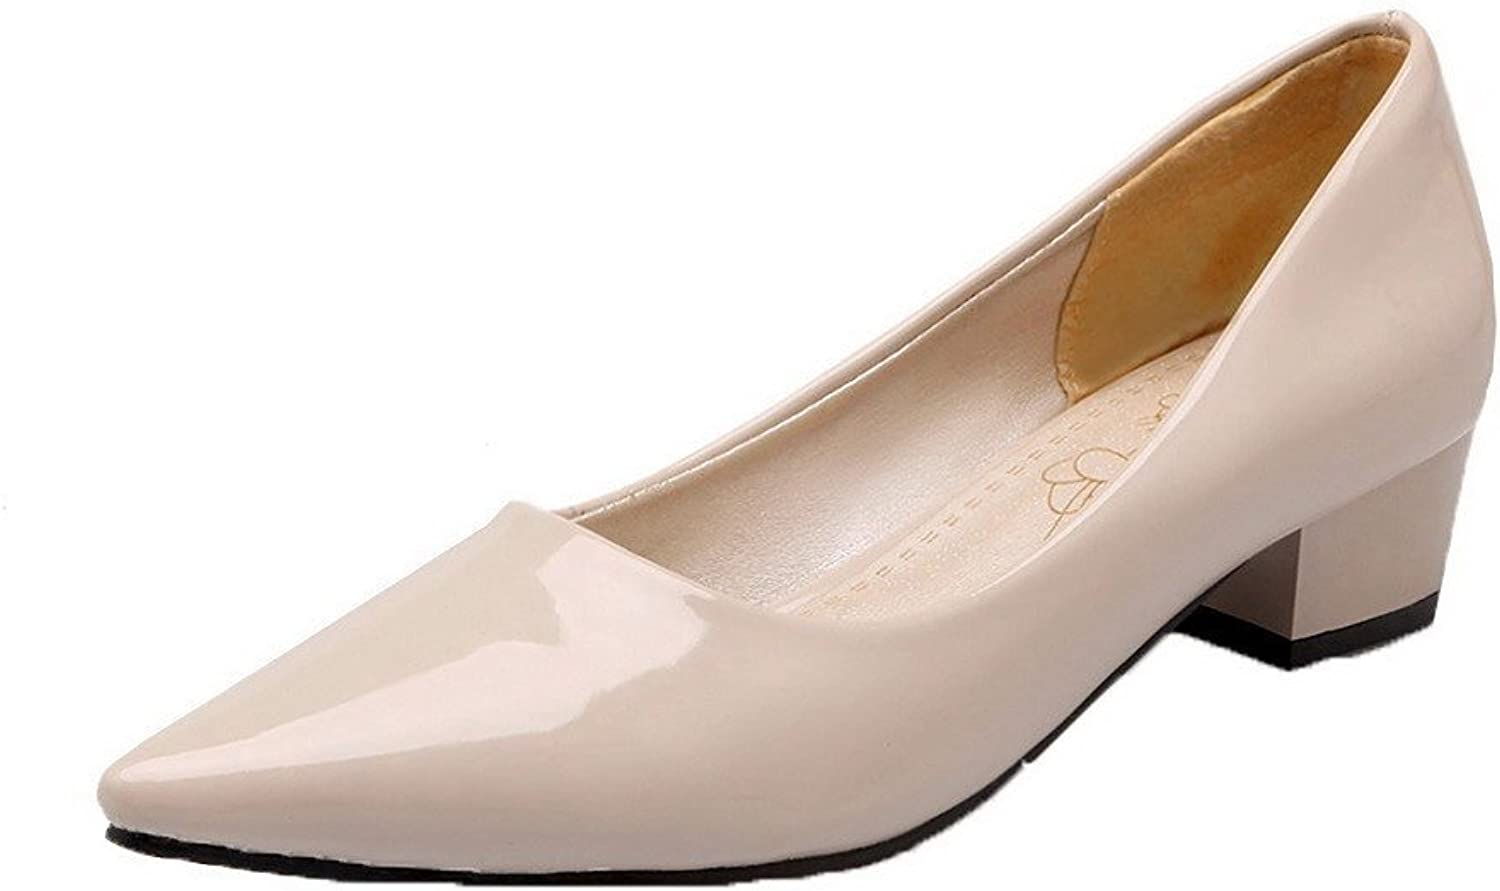 WeenFashion Women's Patent Leather Low-Heels Pull-On Closed-Toe Pumps-shoes